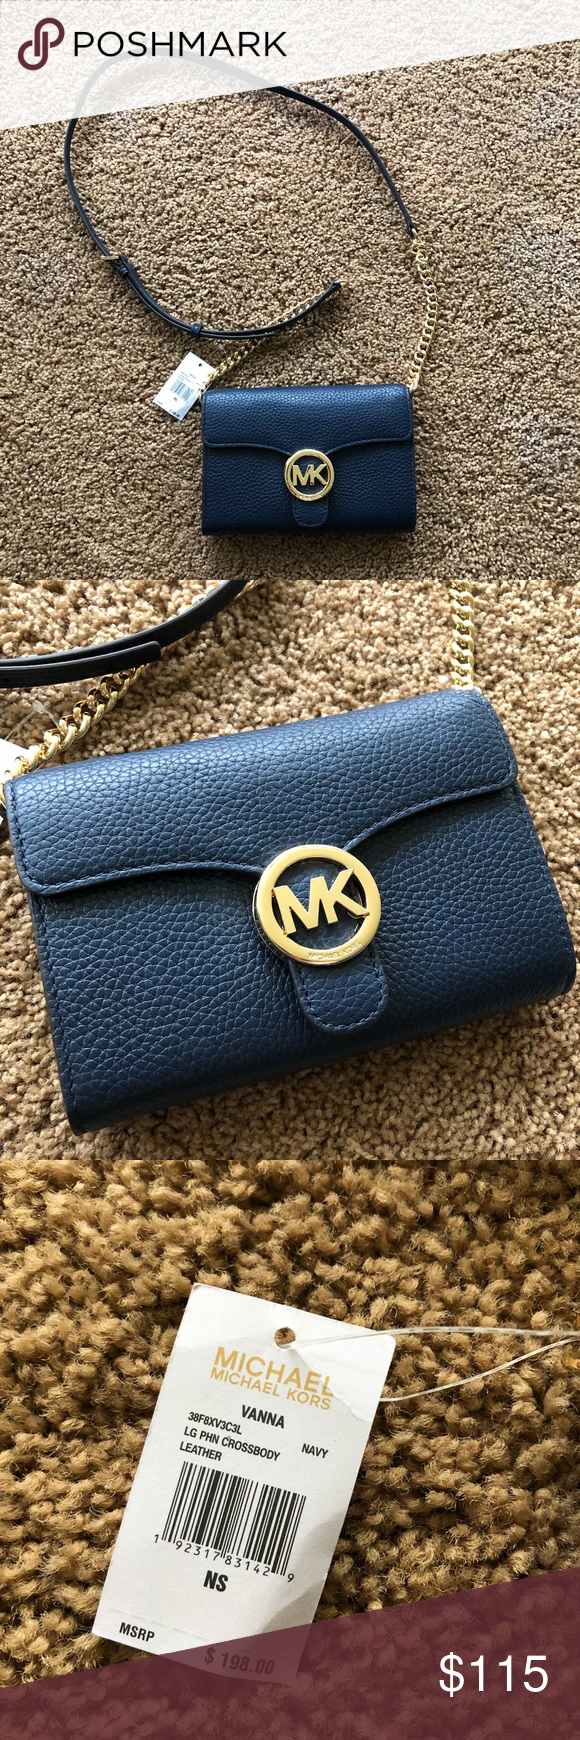 8e969444d646 Michael Kors Navy Crossbody Purse Brand new with tags & authentic!  Retails : $198